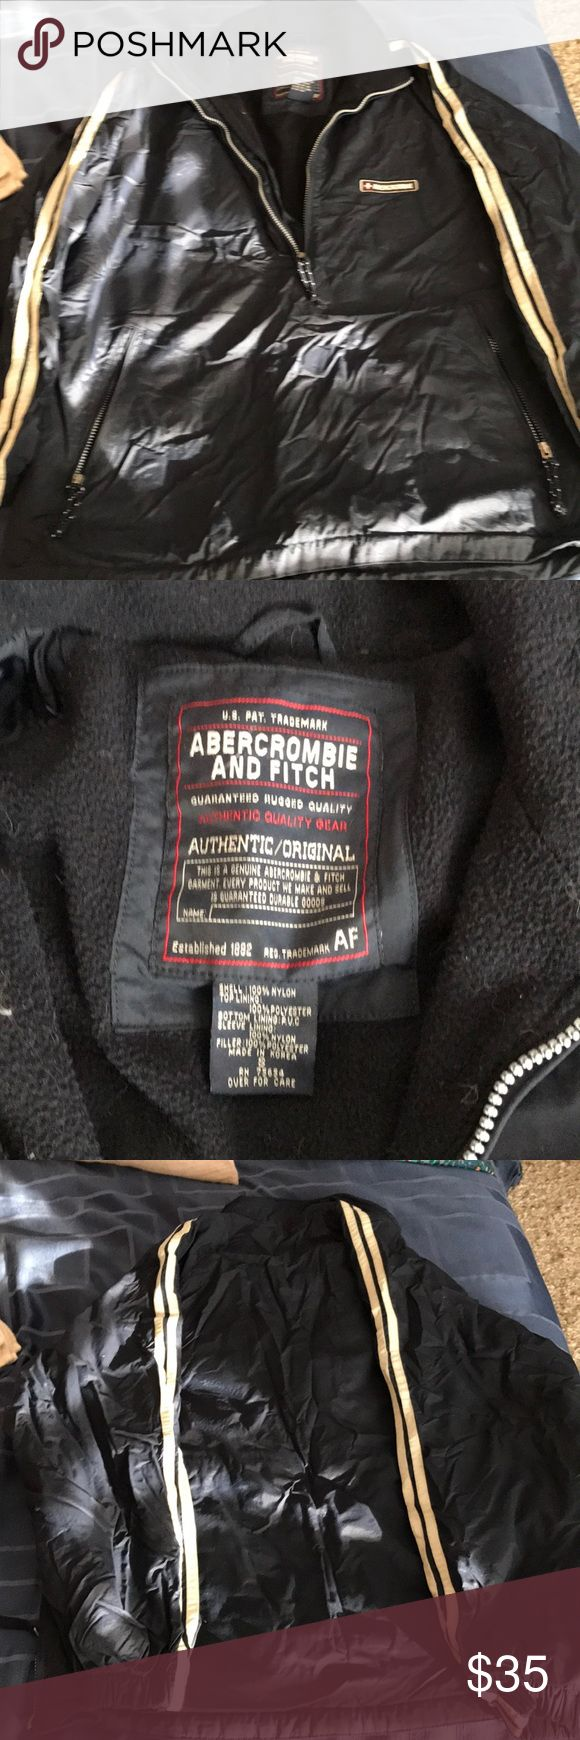 Navy blue Abercrombie coat Pullover Abercrombie men's winter coat Abercrombie & Fitch Jackets & Coats Puffers